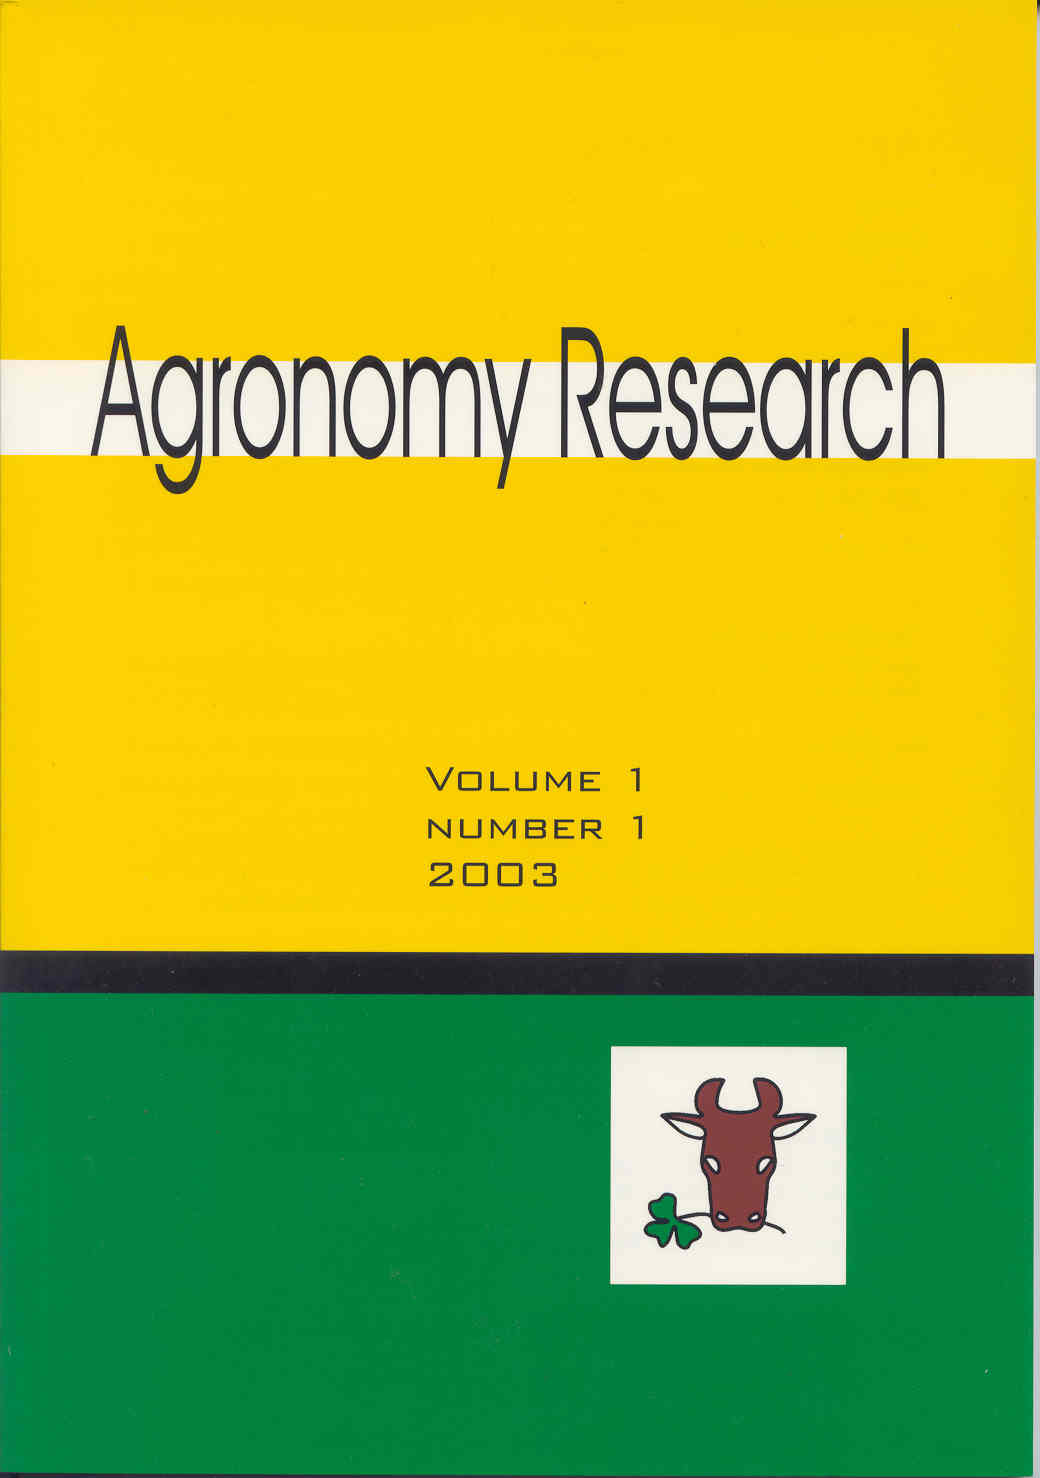 agronomy research